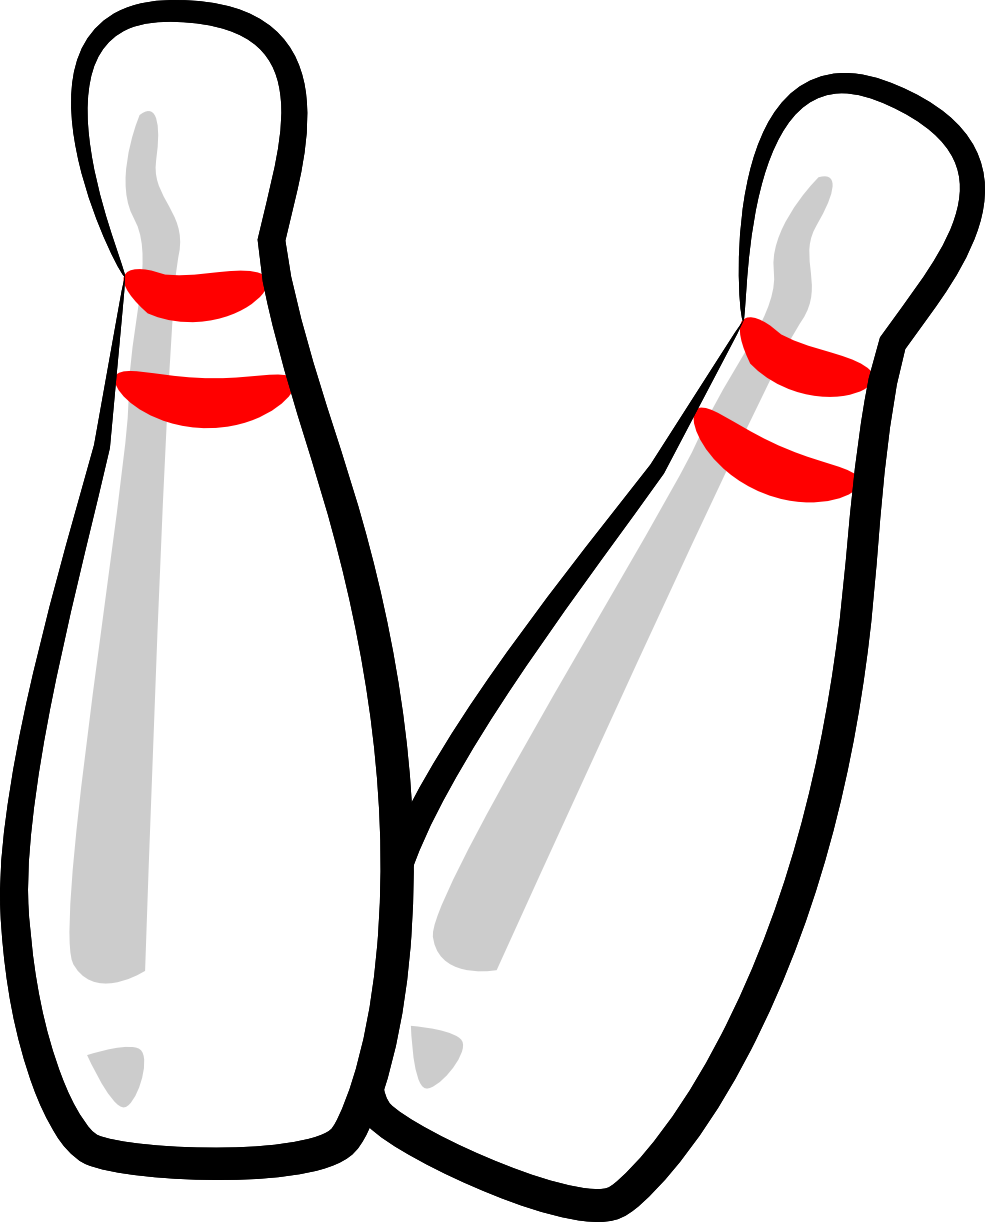 Bowling Pin Clipart - Cliparts.co